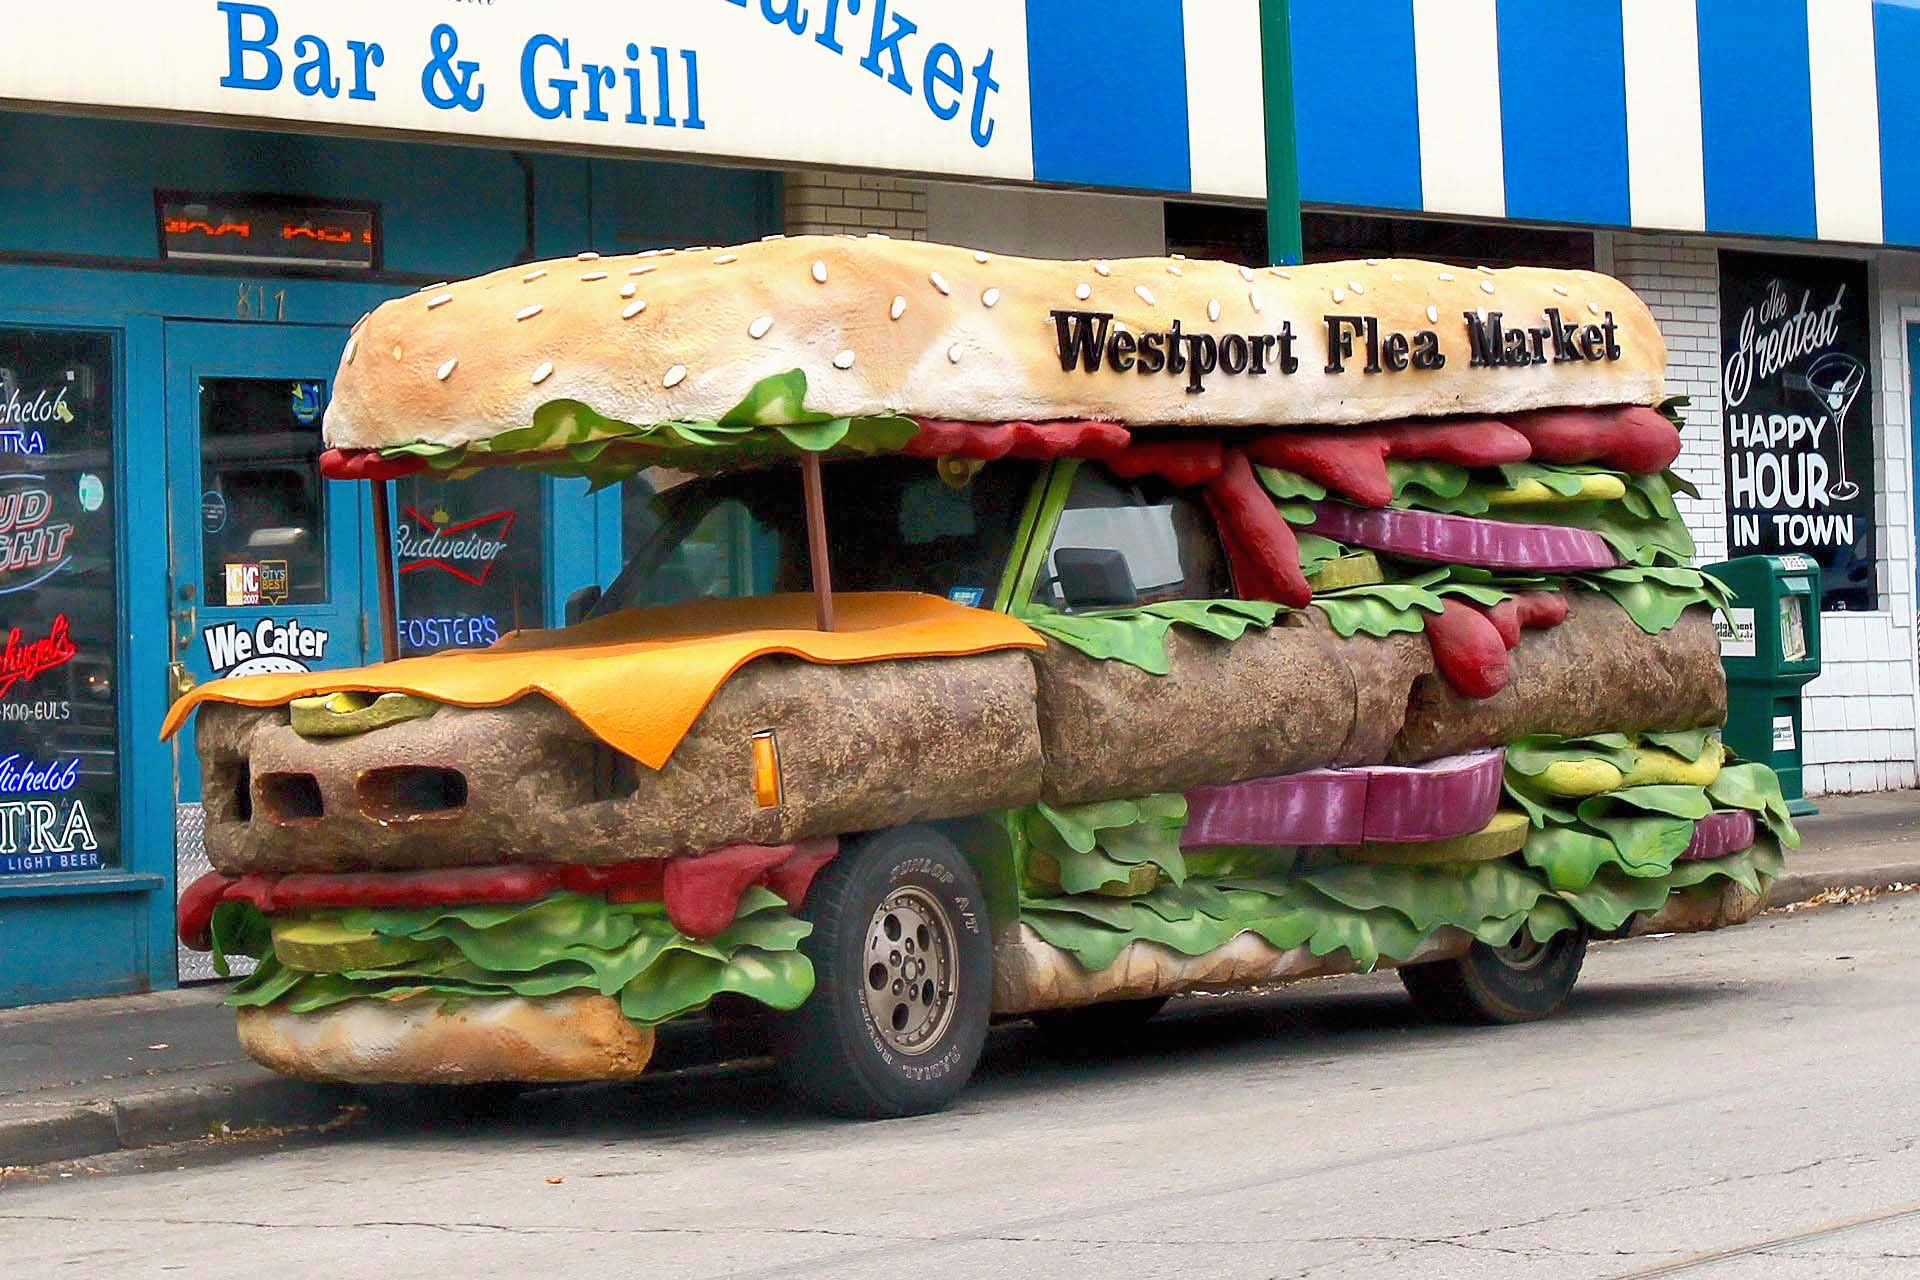 While not a food truck per se, this promotional bus for Westport Flea Market Bar and Grill is delicious. Created by master promotional vehicle artist Matt Targon, who had always dreamed of creating a burger car, the beefy, cheesy vehicle based on a Chevrolet S10 pickup roams the streets of Kansas City getting the name of this tasty burger joints out and about.